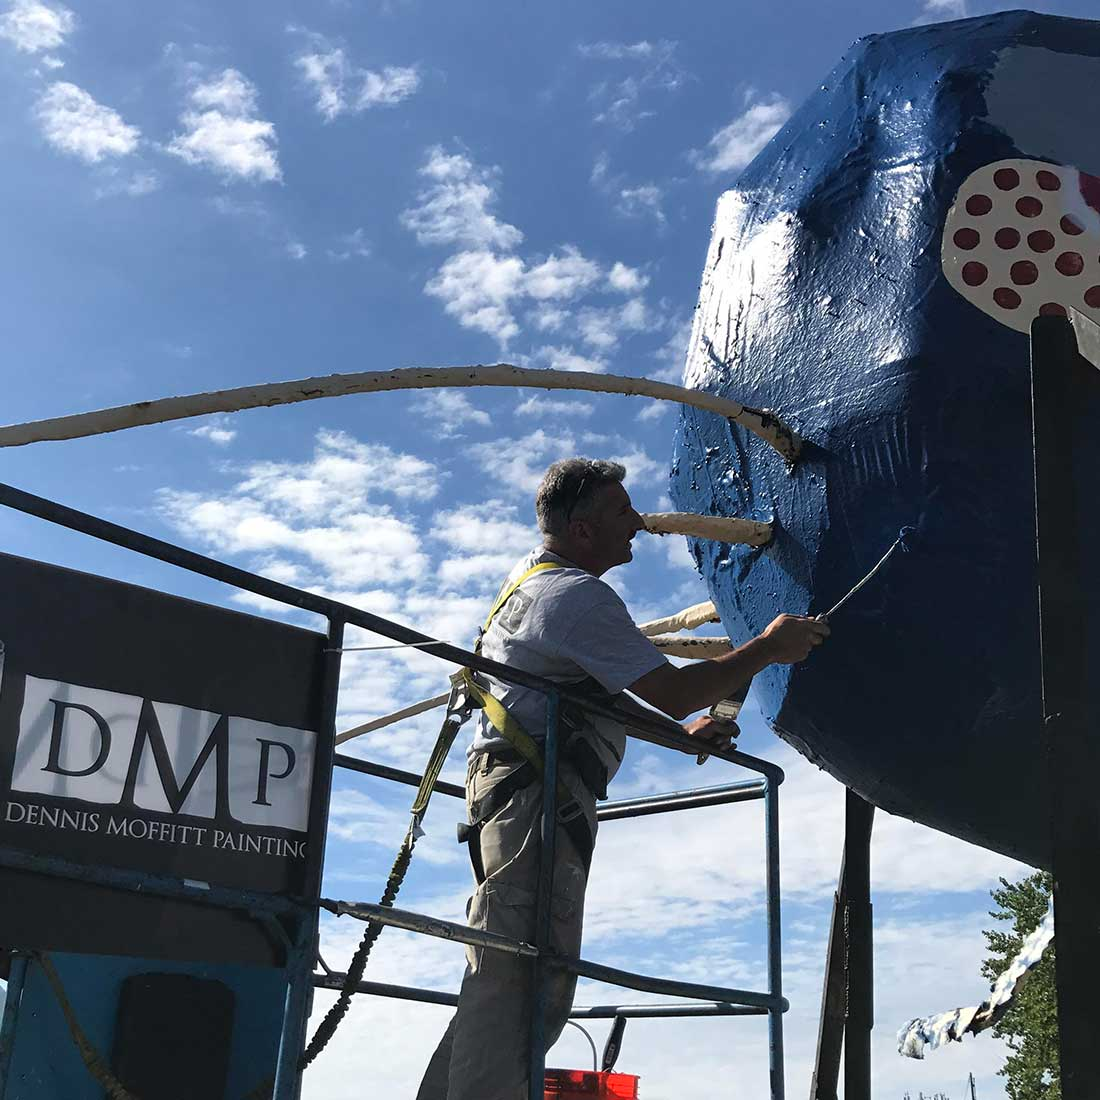 Dennis Moffitt Painting puts the finishing touches on the Big Blue Bug